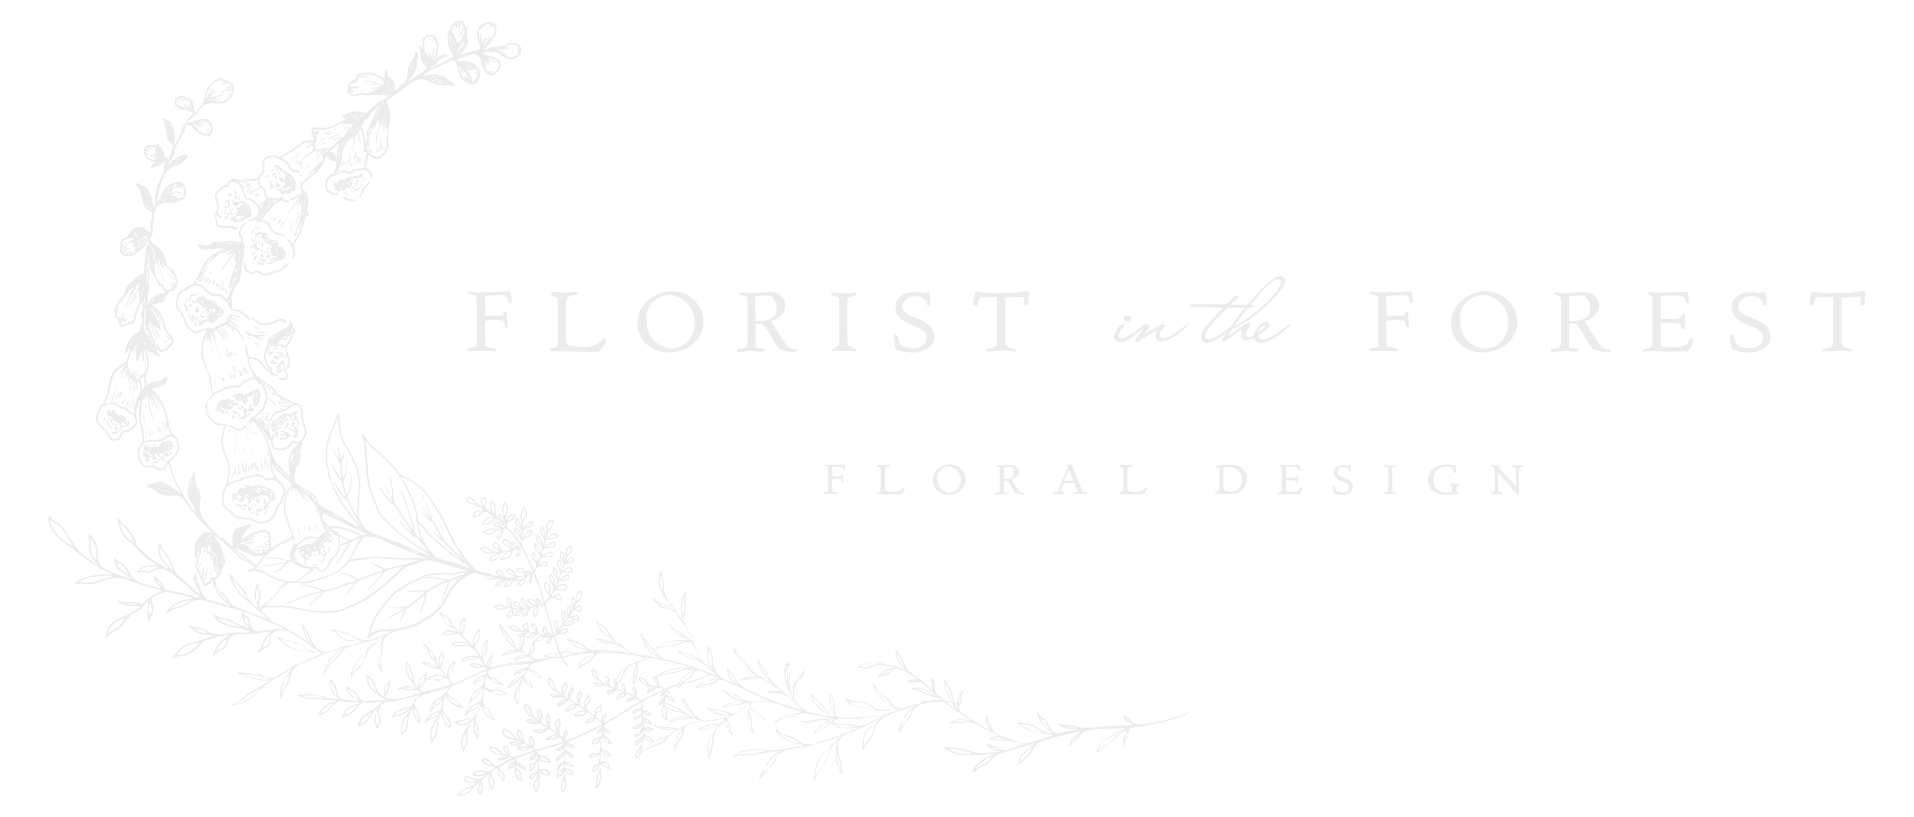 Florist in the Forest